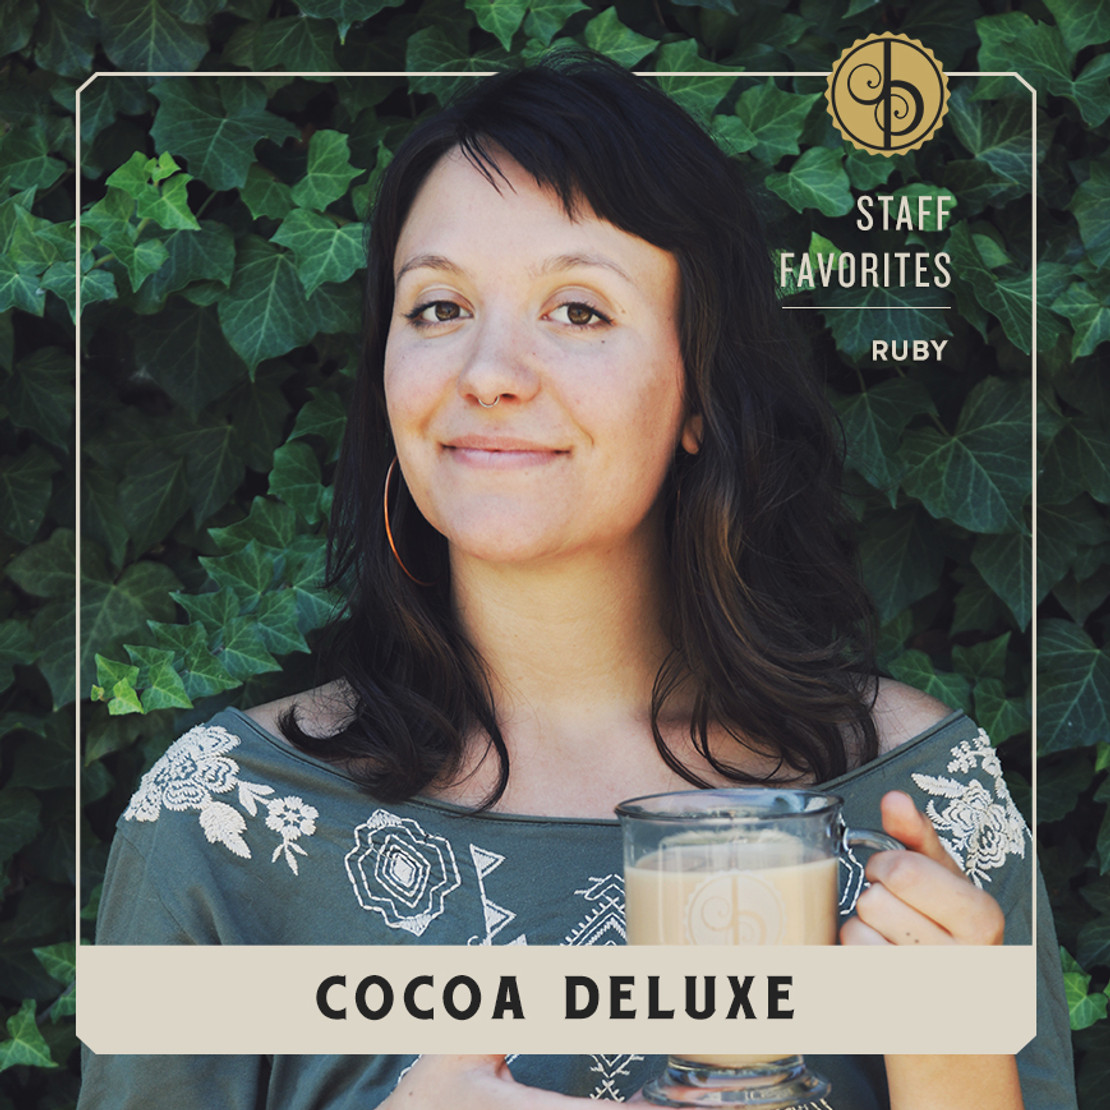 Staff Favorites: Ruby & Cocoa Deluxe